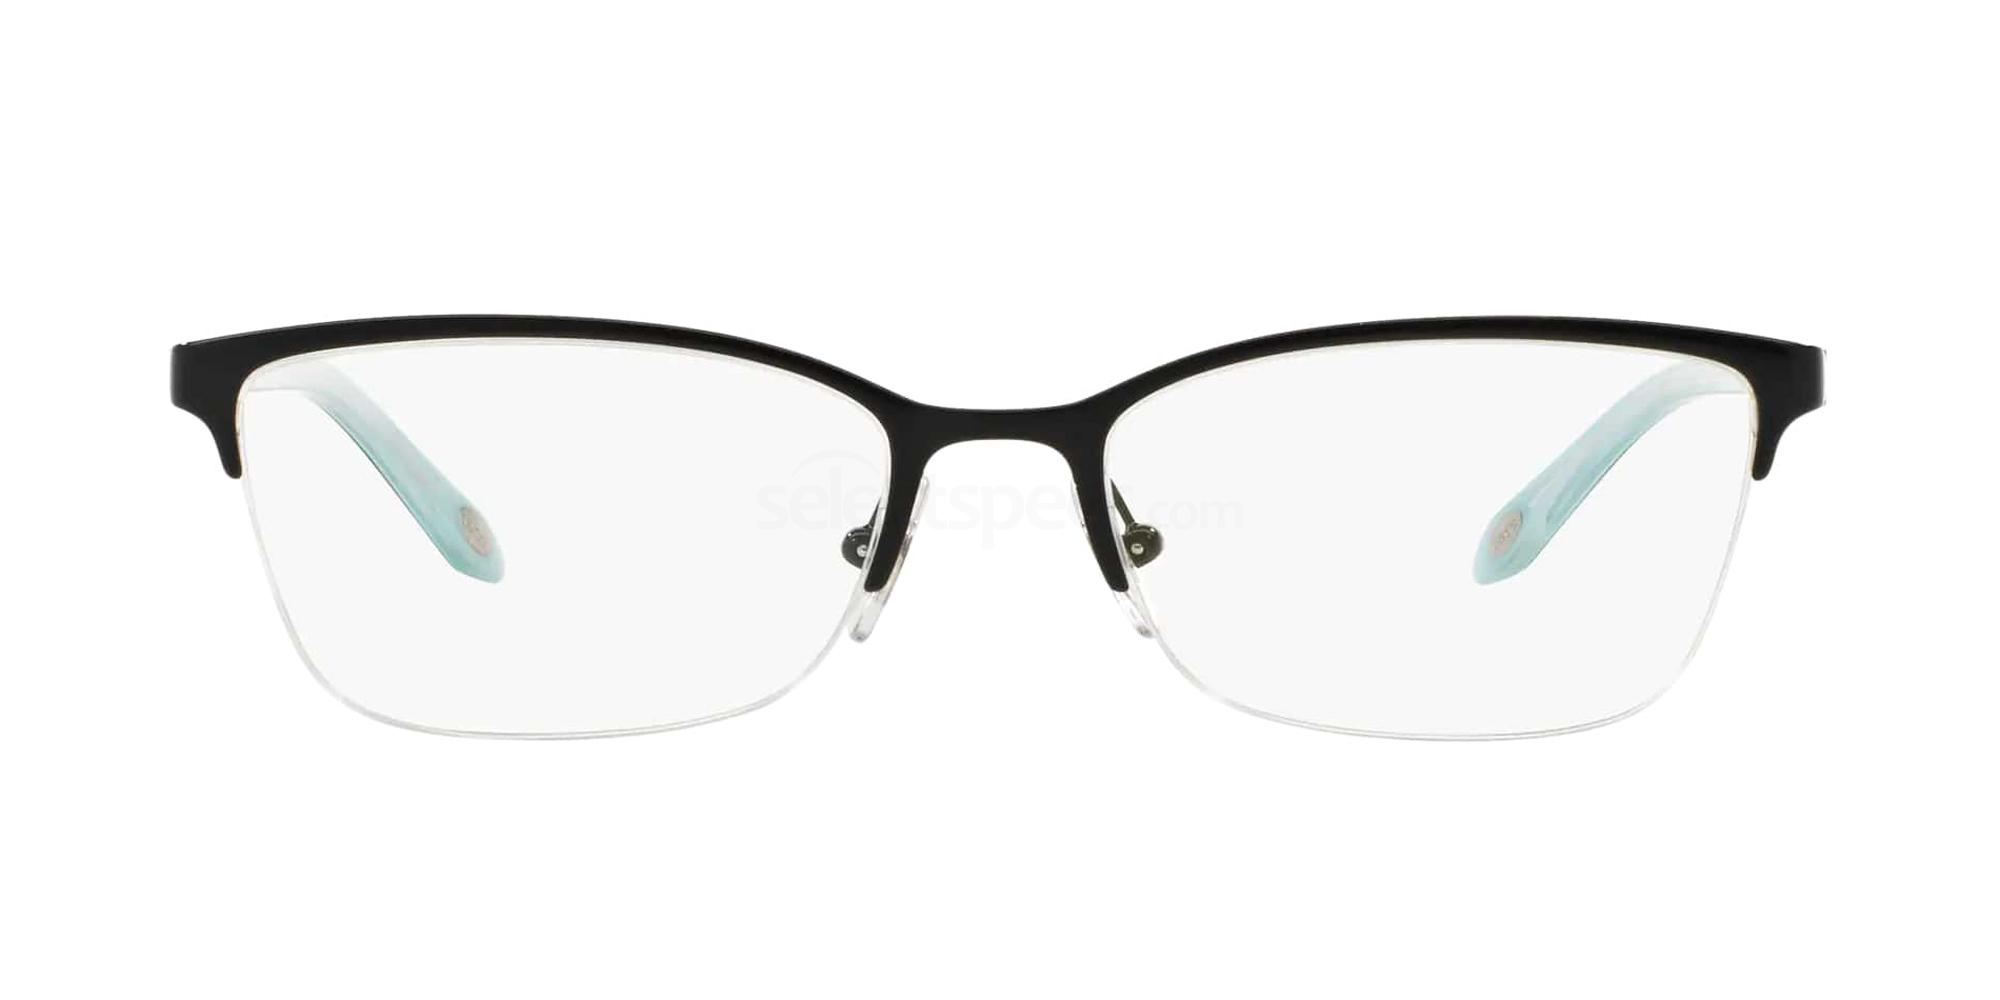 6097 TF1111B Glasses, Tiffany & Co.